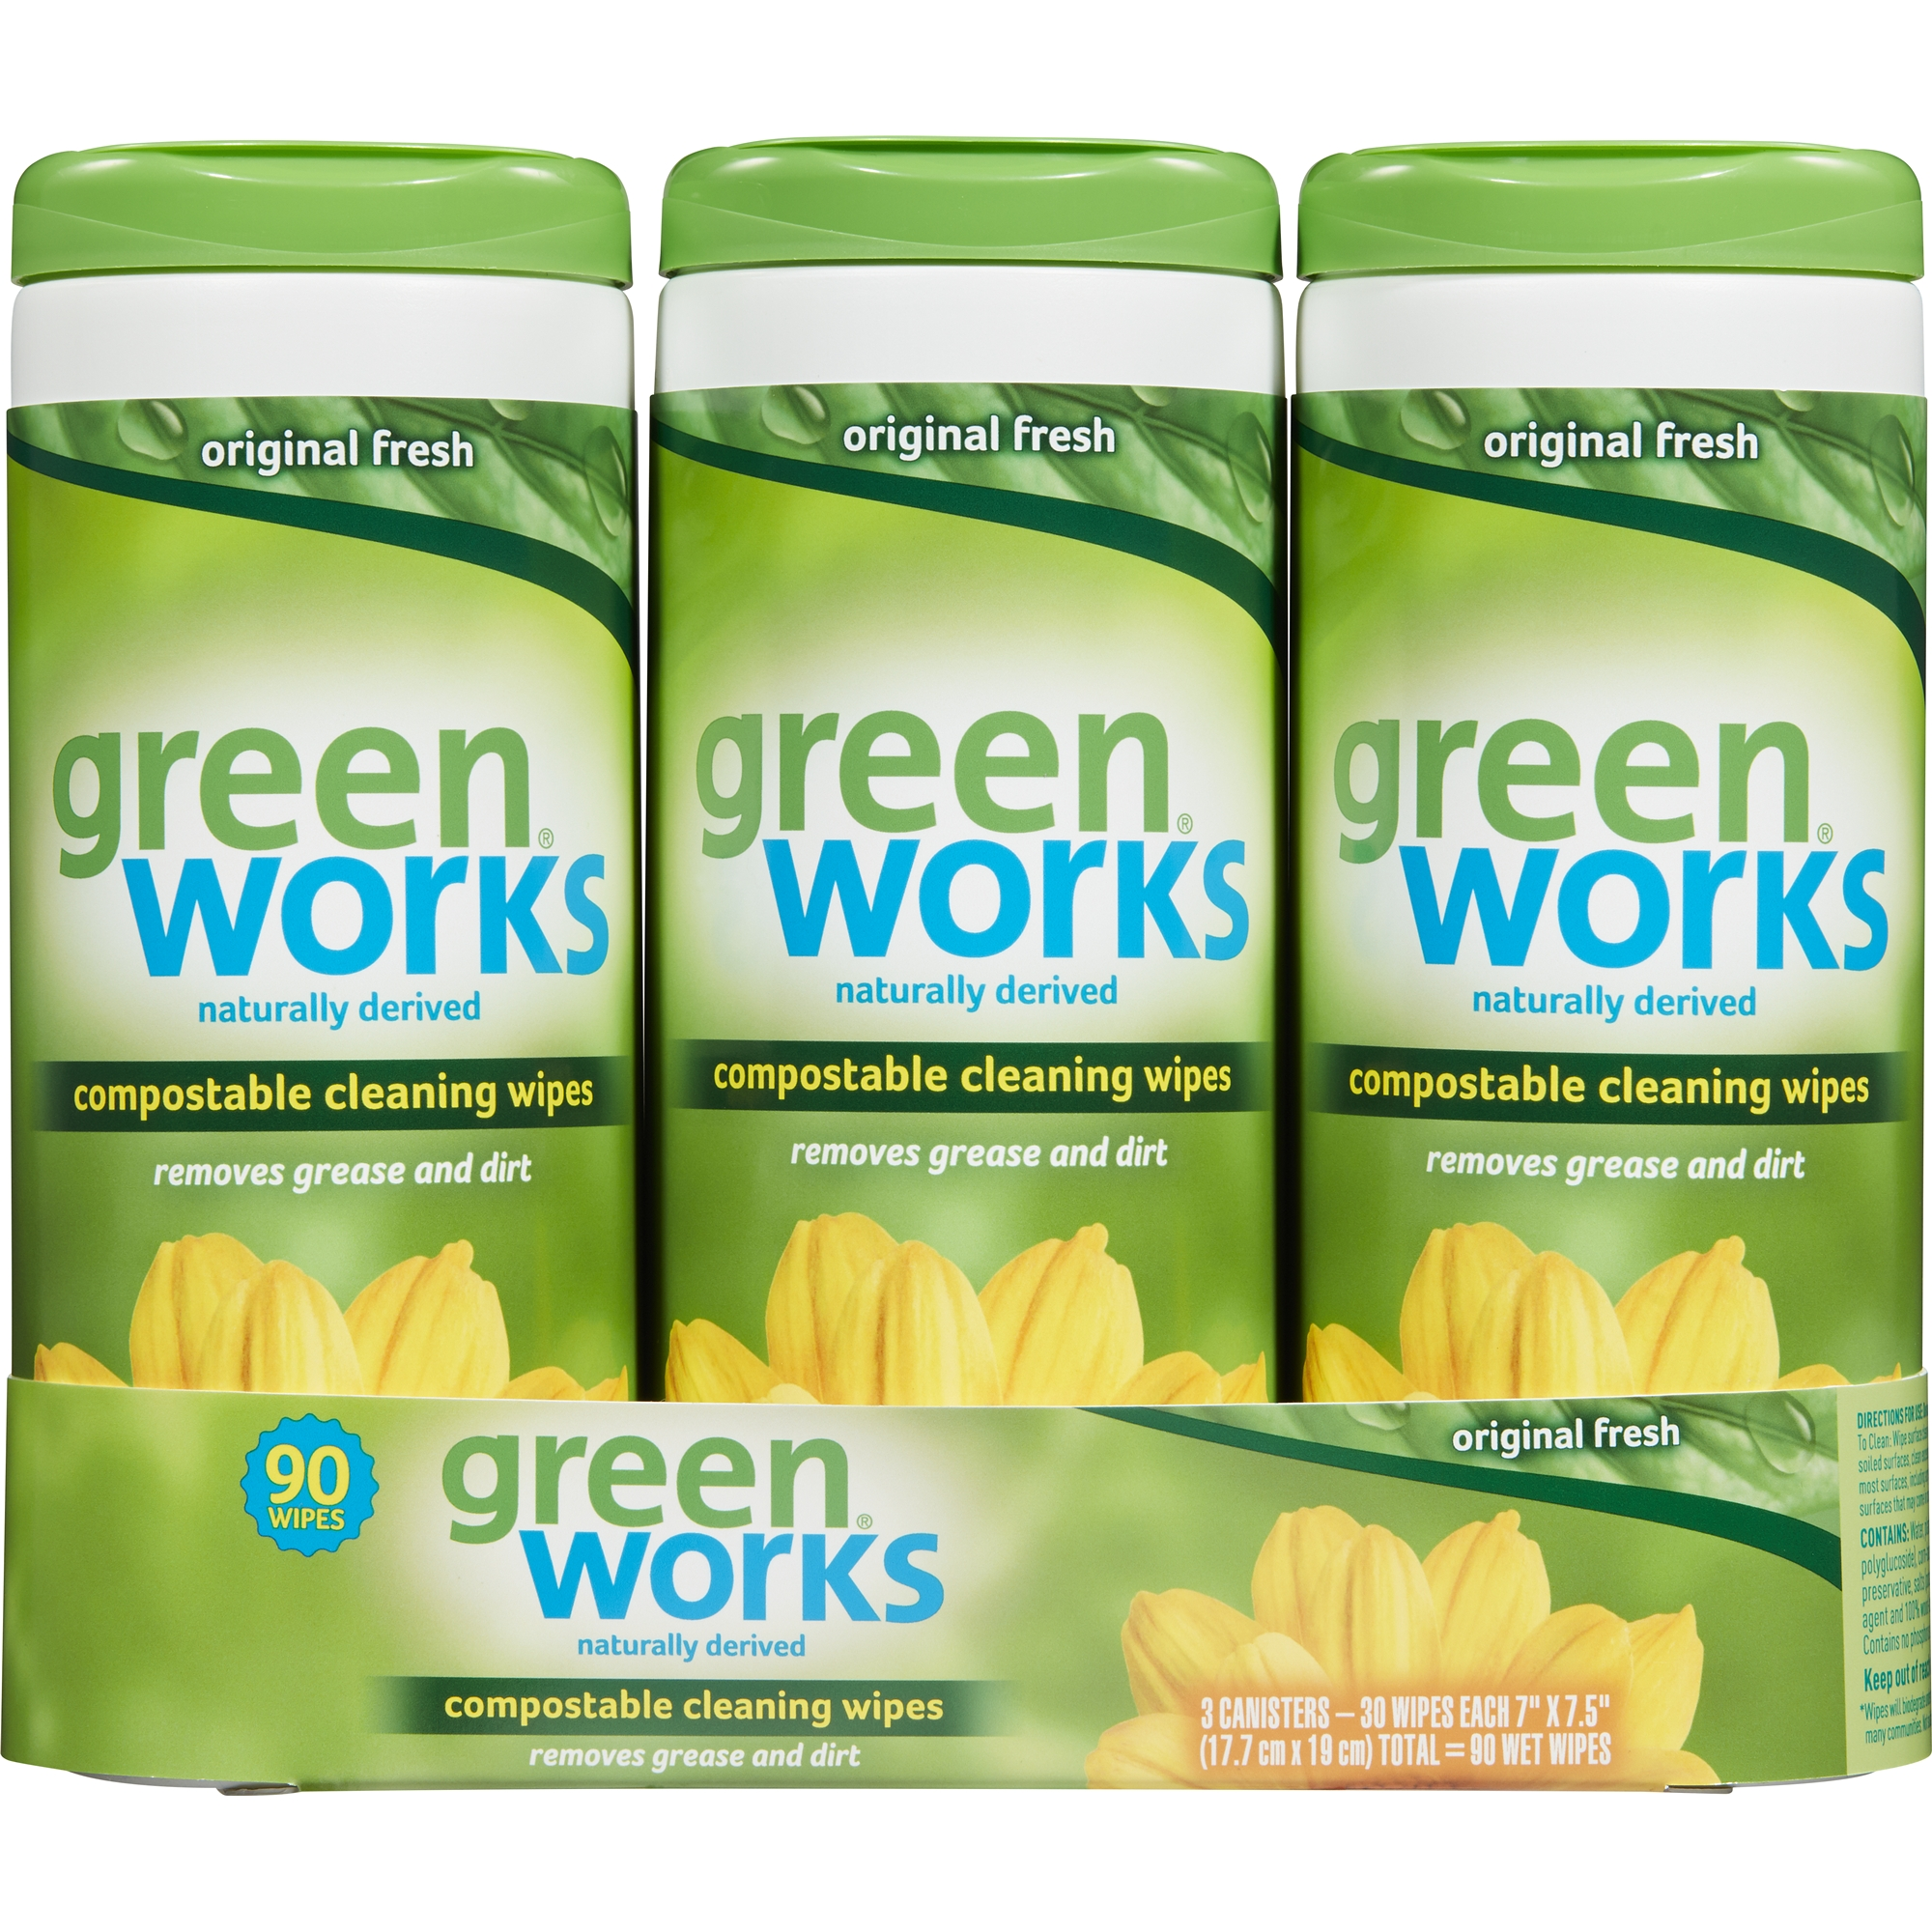 Green Works Compostable Cleaning Wipes, Original Fresh, 90 ct